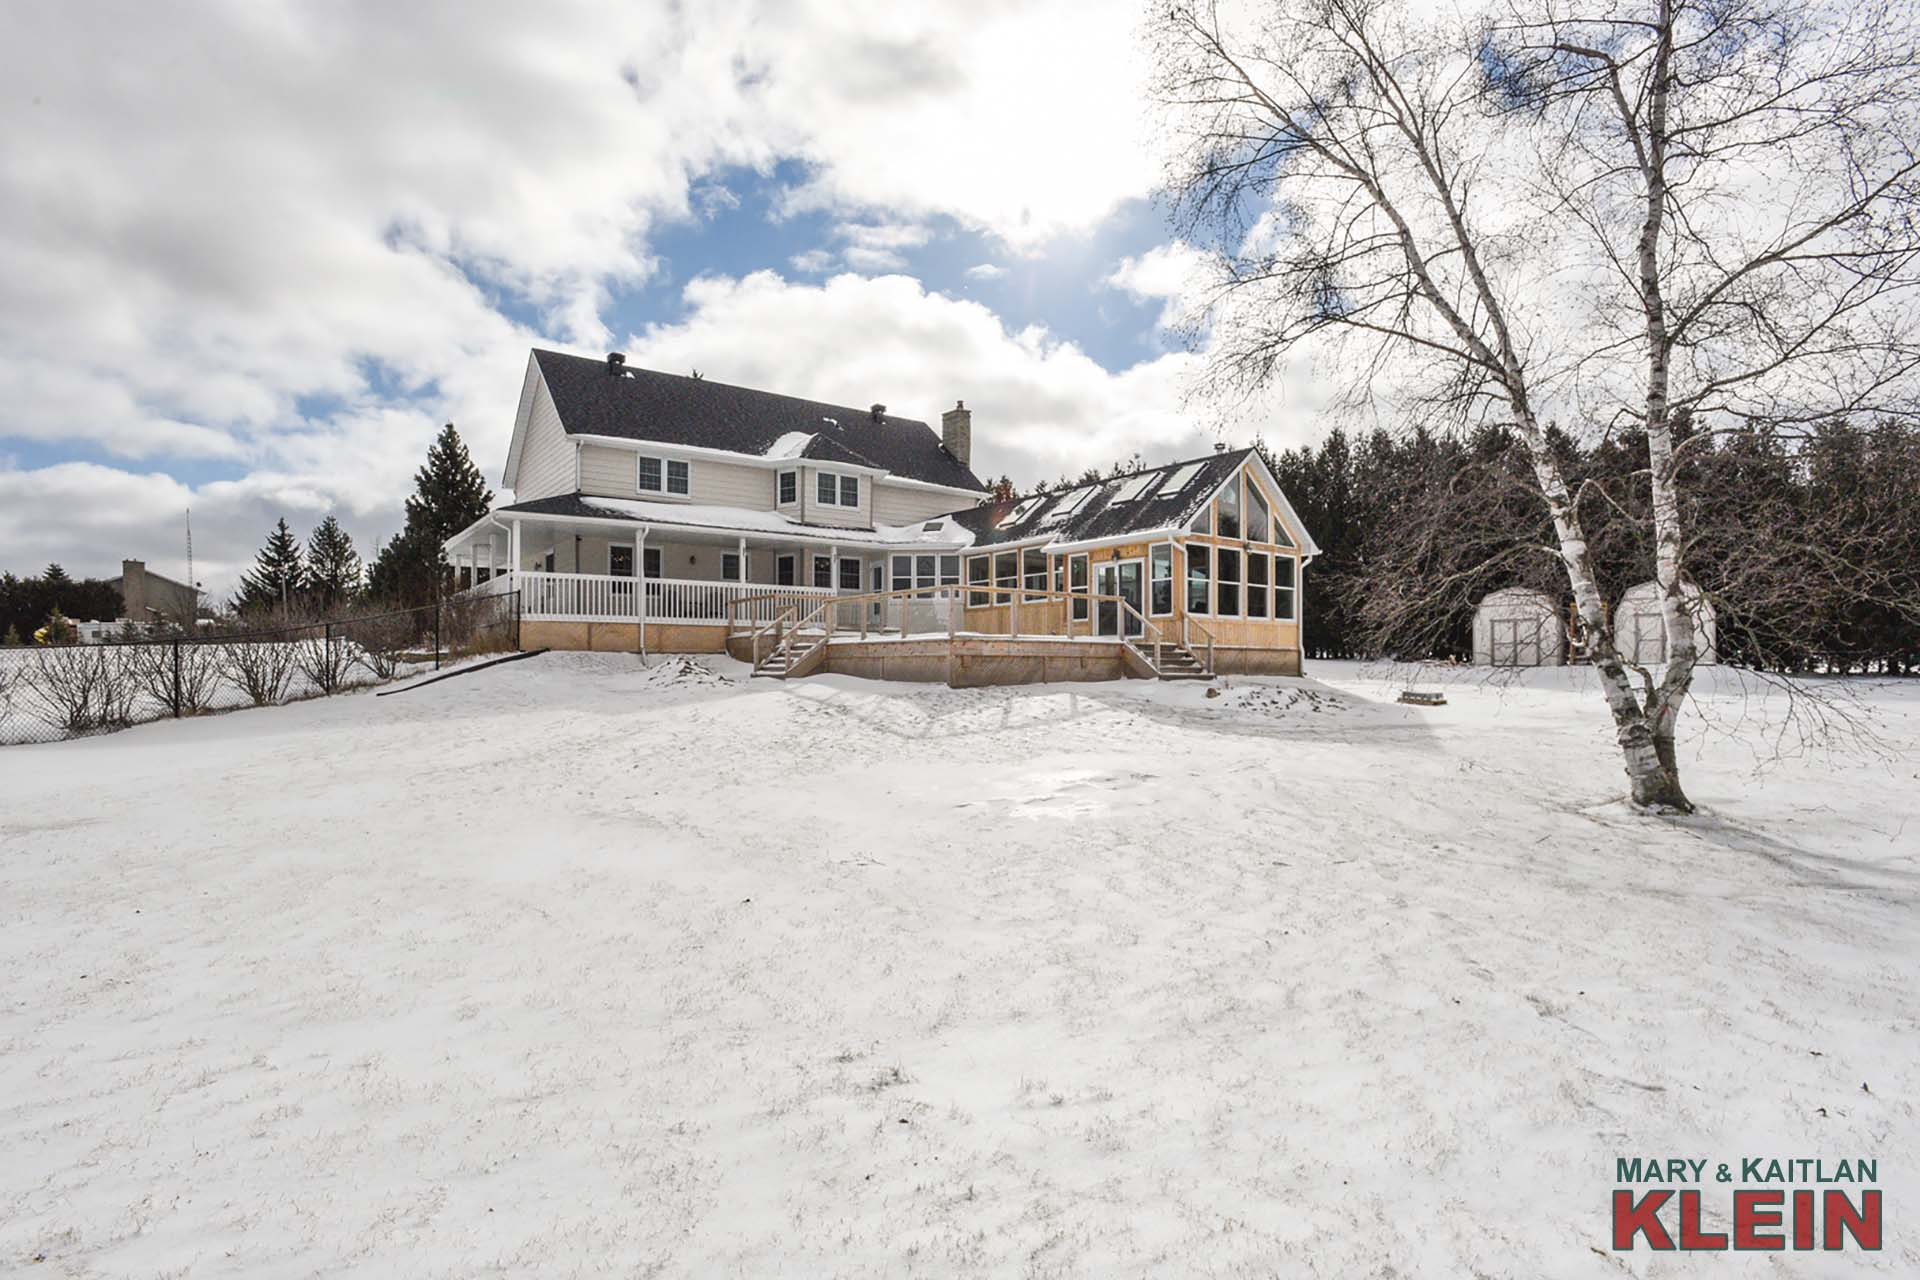 Caledon homes for sale, 5 bedroom